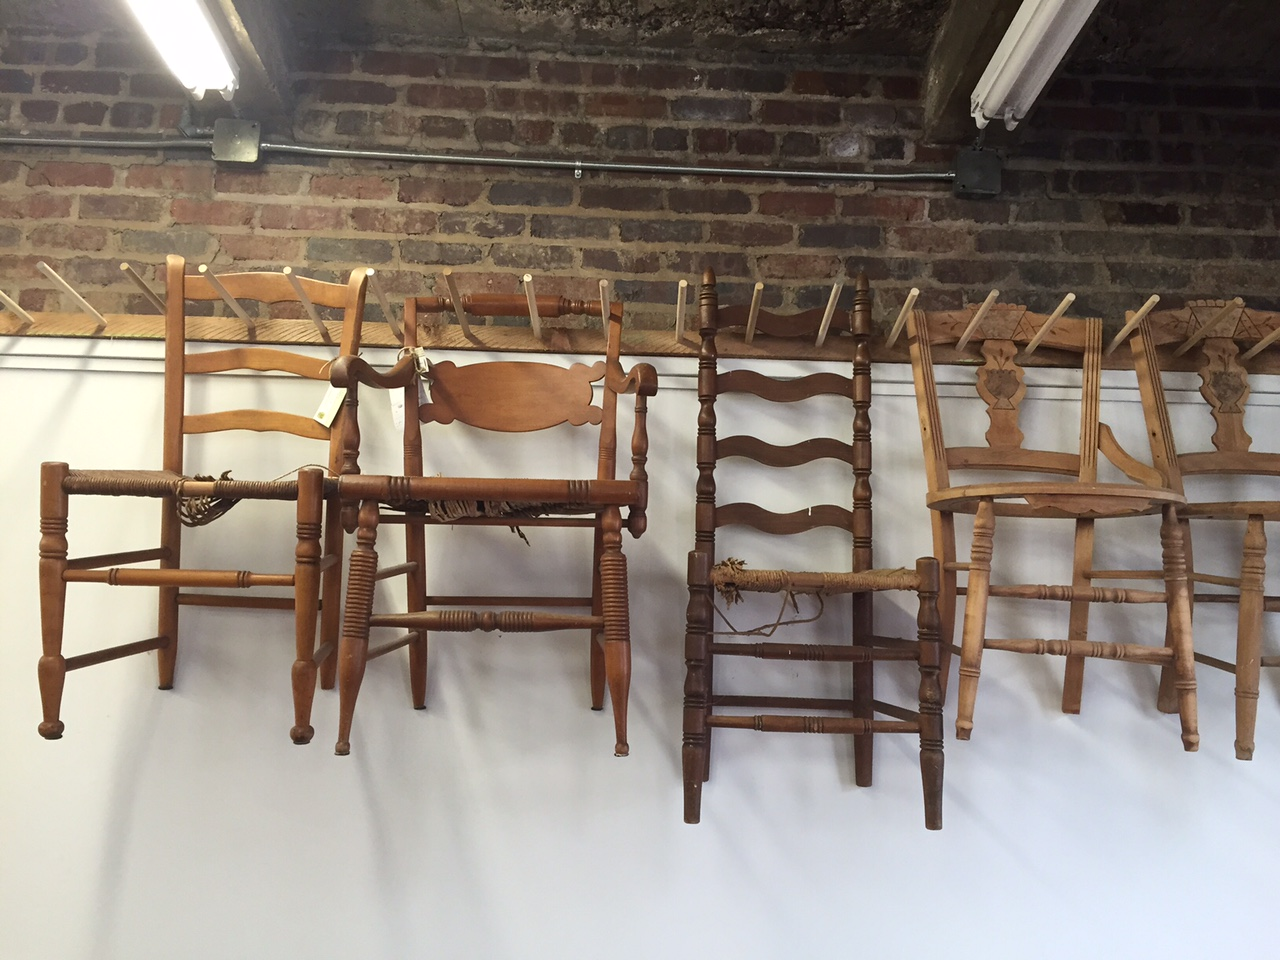 In Asheville's River Arts District, a unique chair caning school and museum